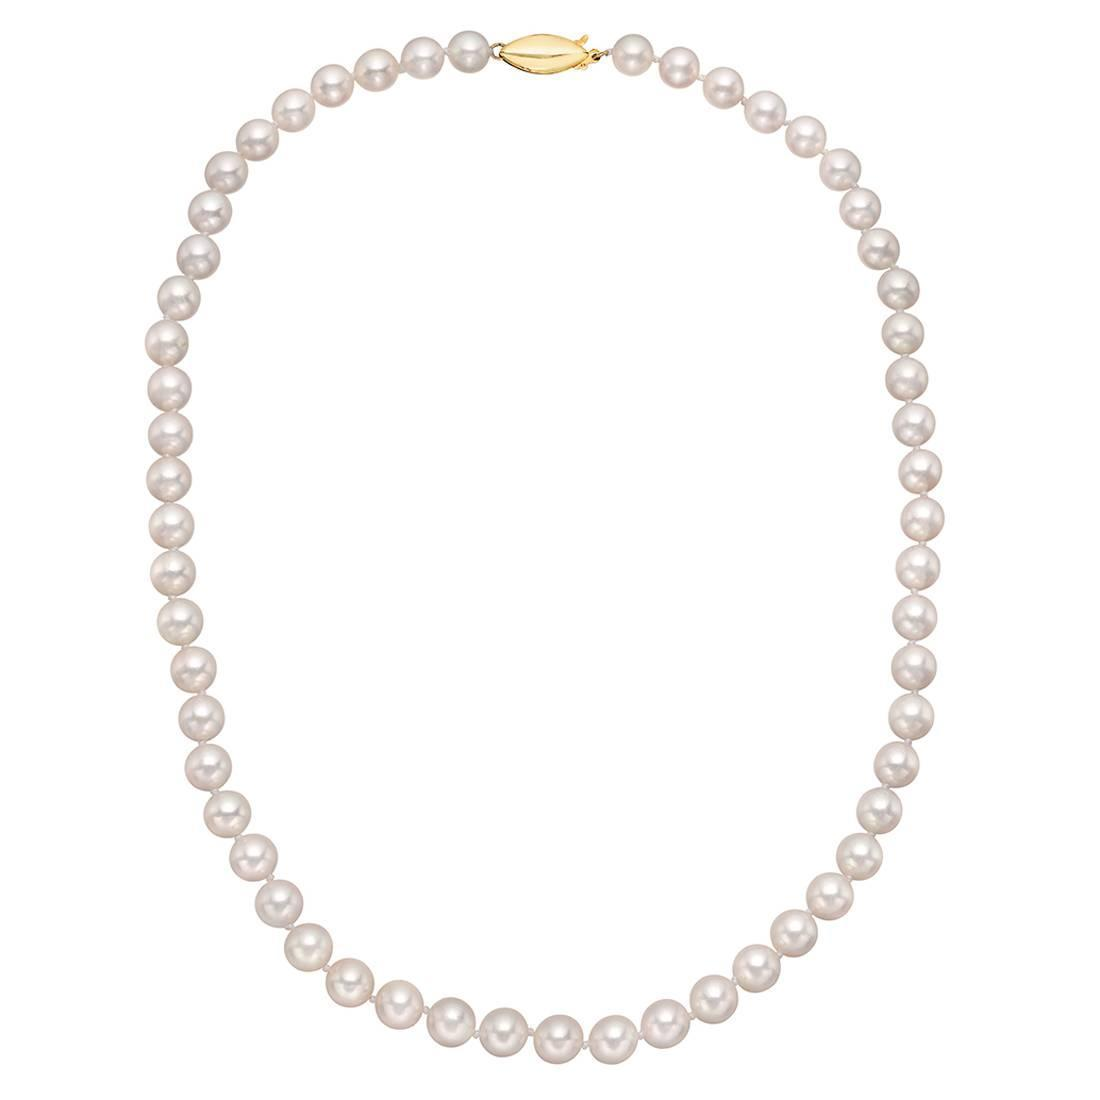 Cultured pearls necklace : Graduated to mm cultured pearl necklace at stdibs